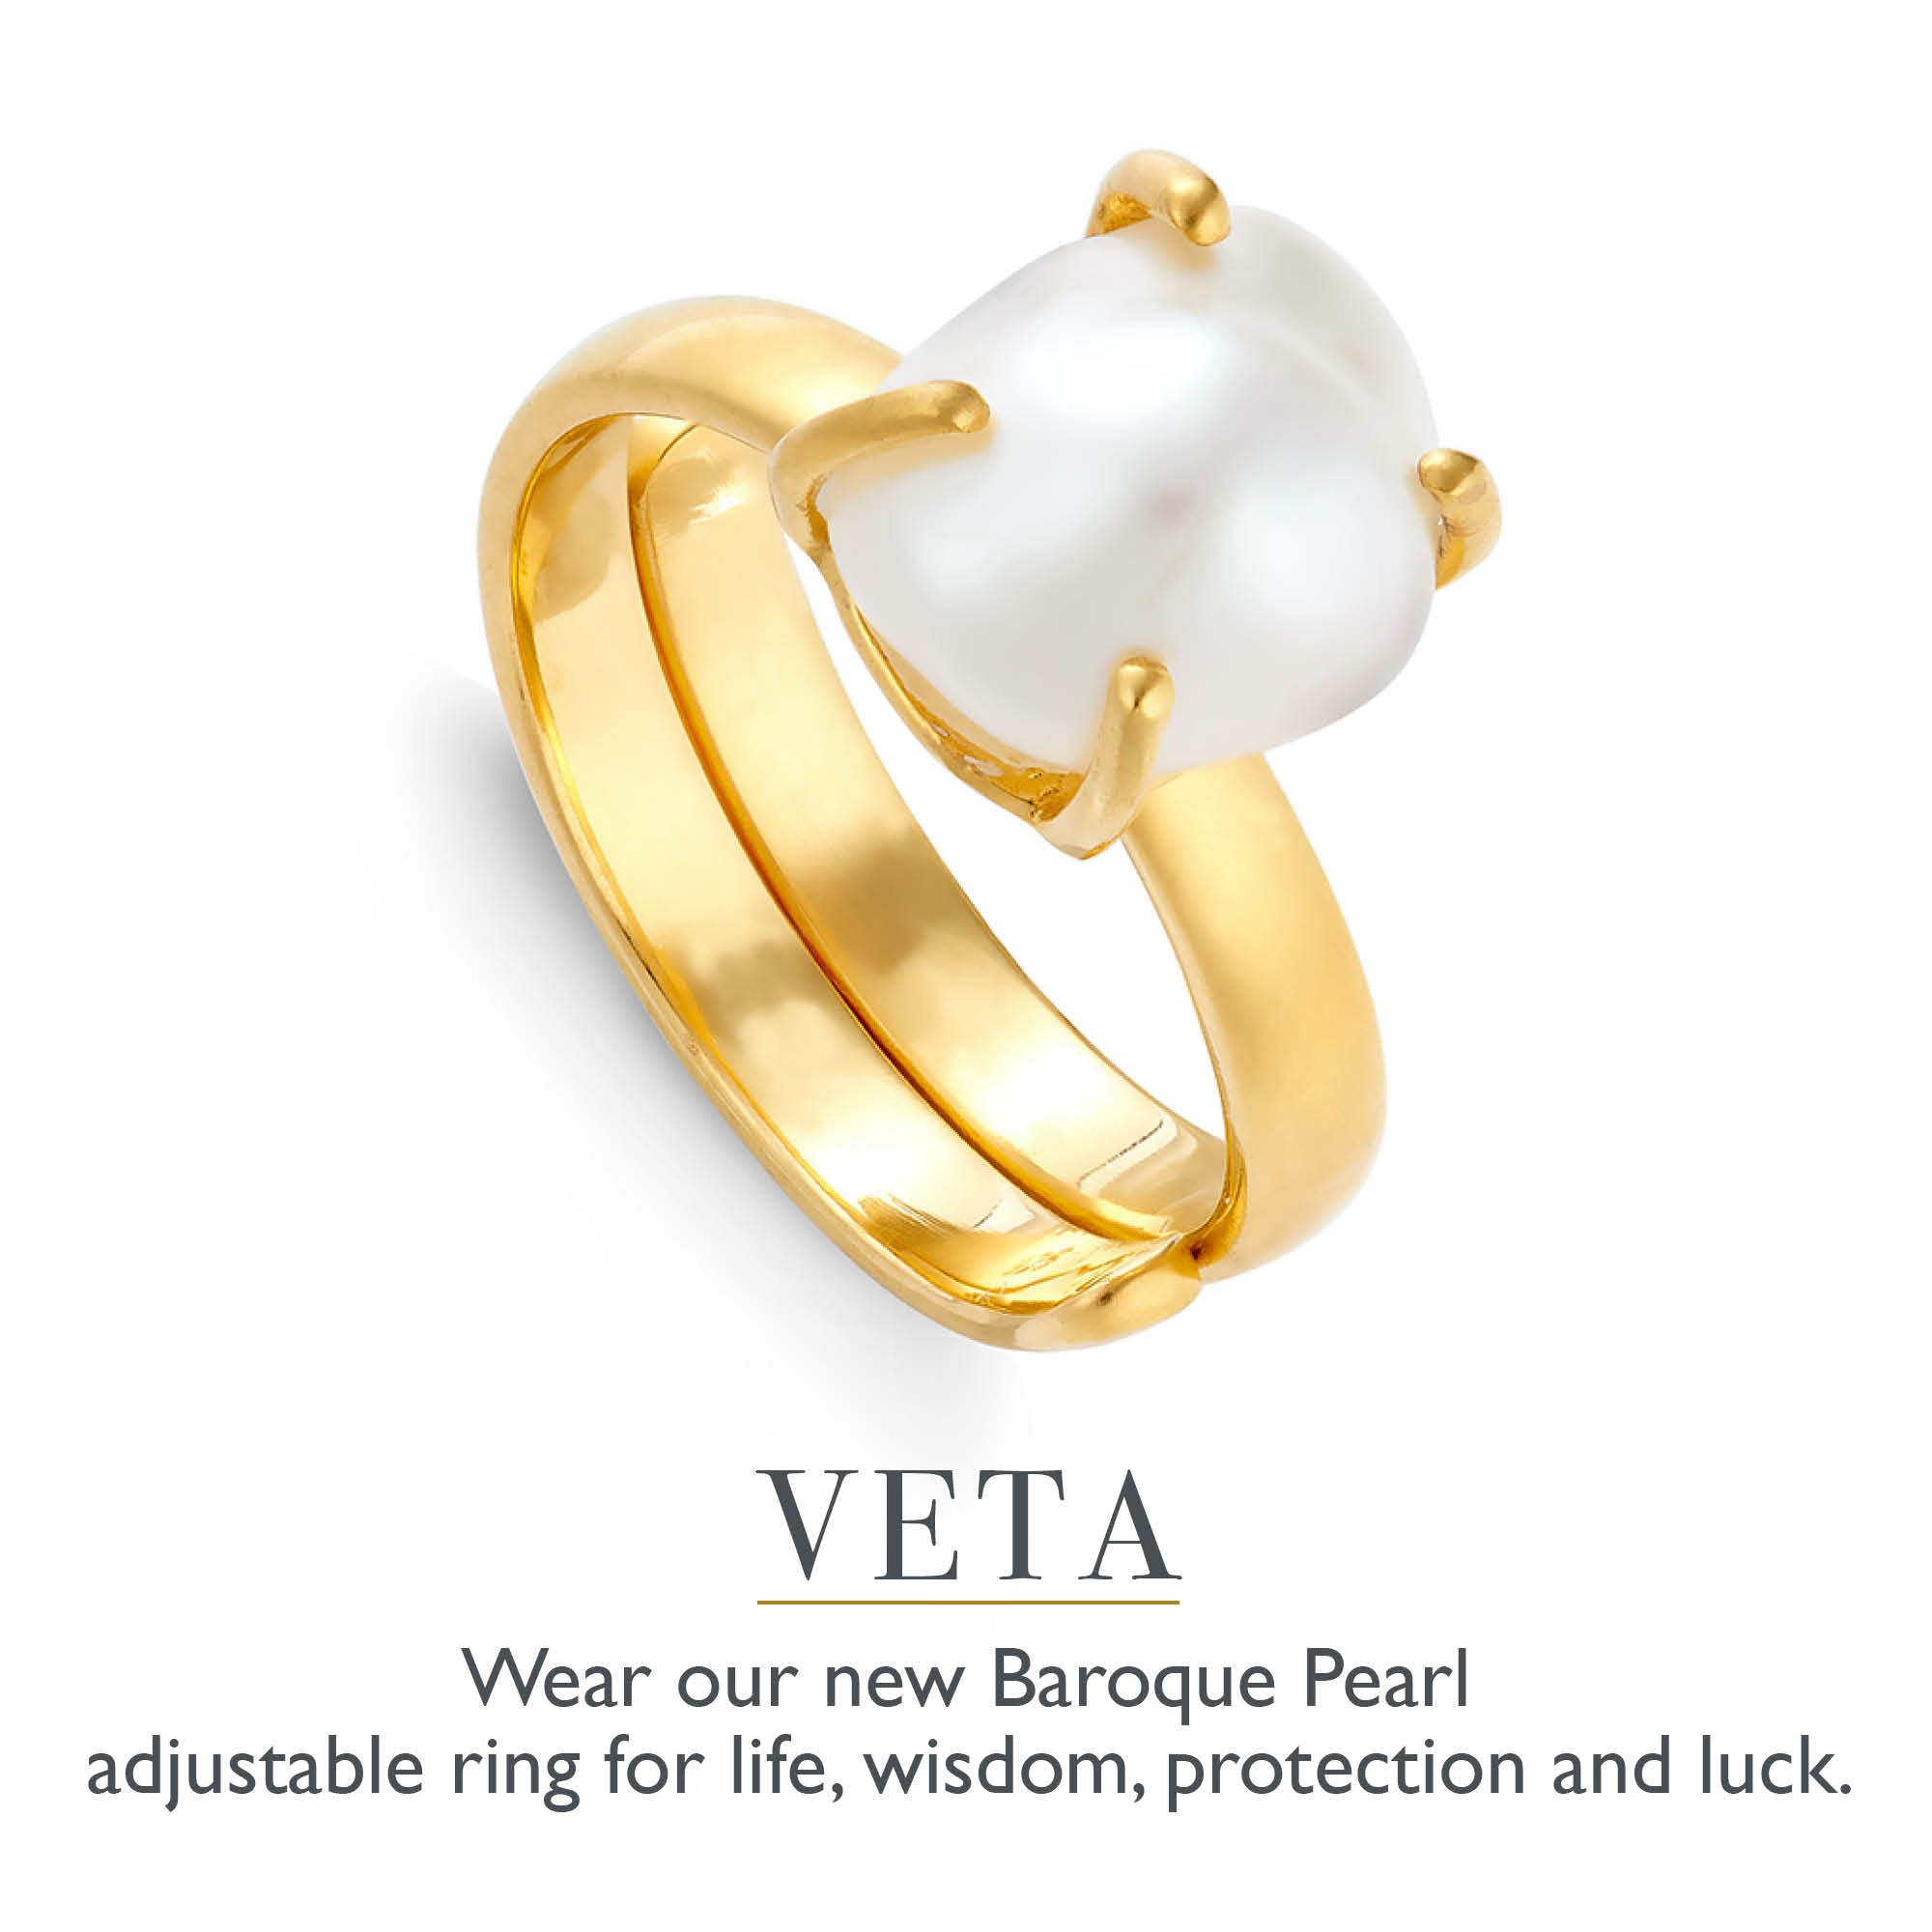 Veta new Baroque Pearl Adjustable ring by SVP Jewellery